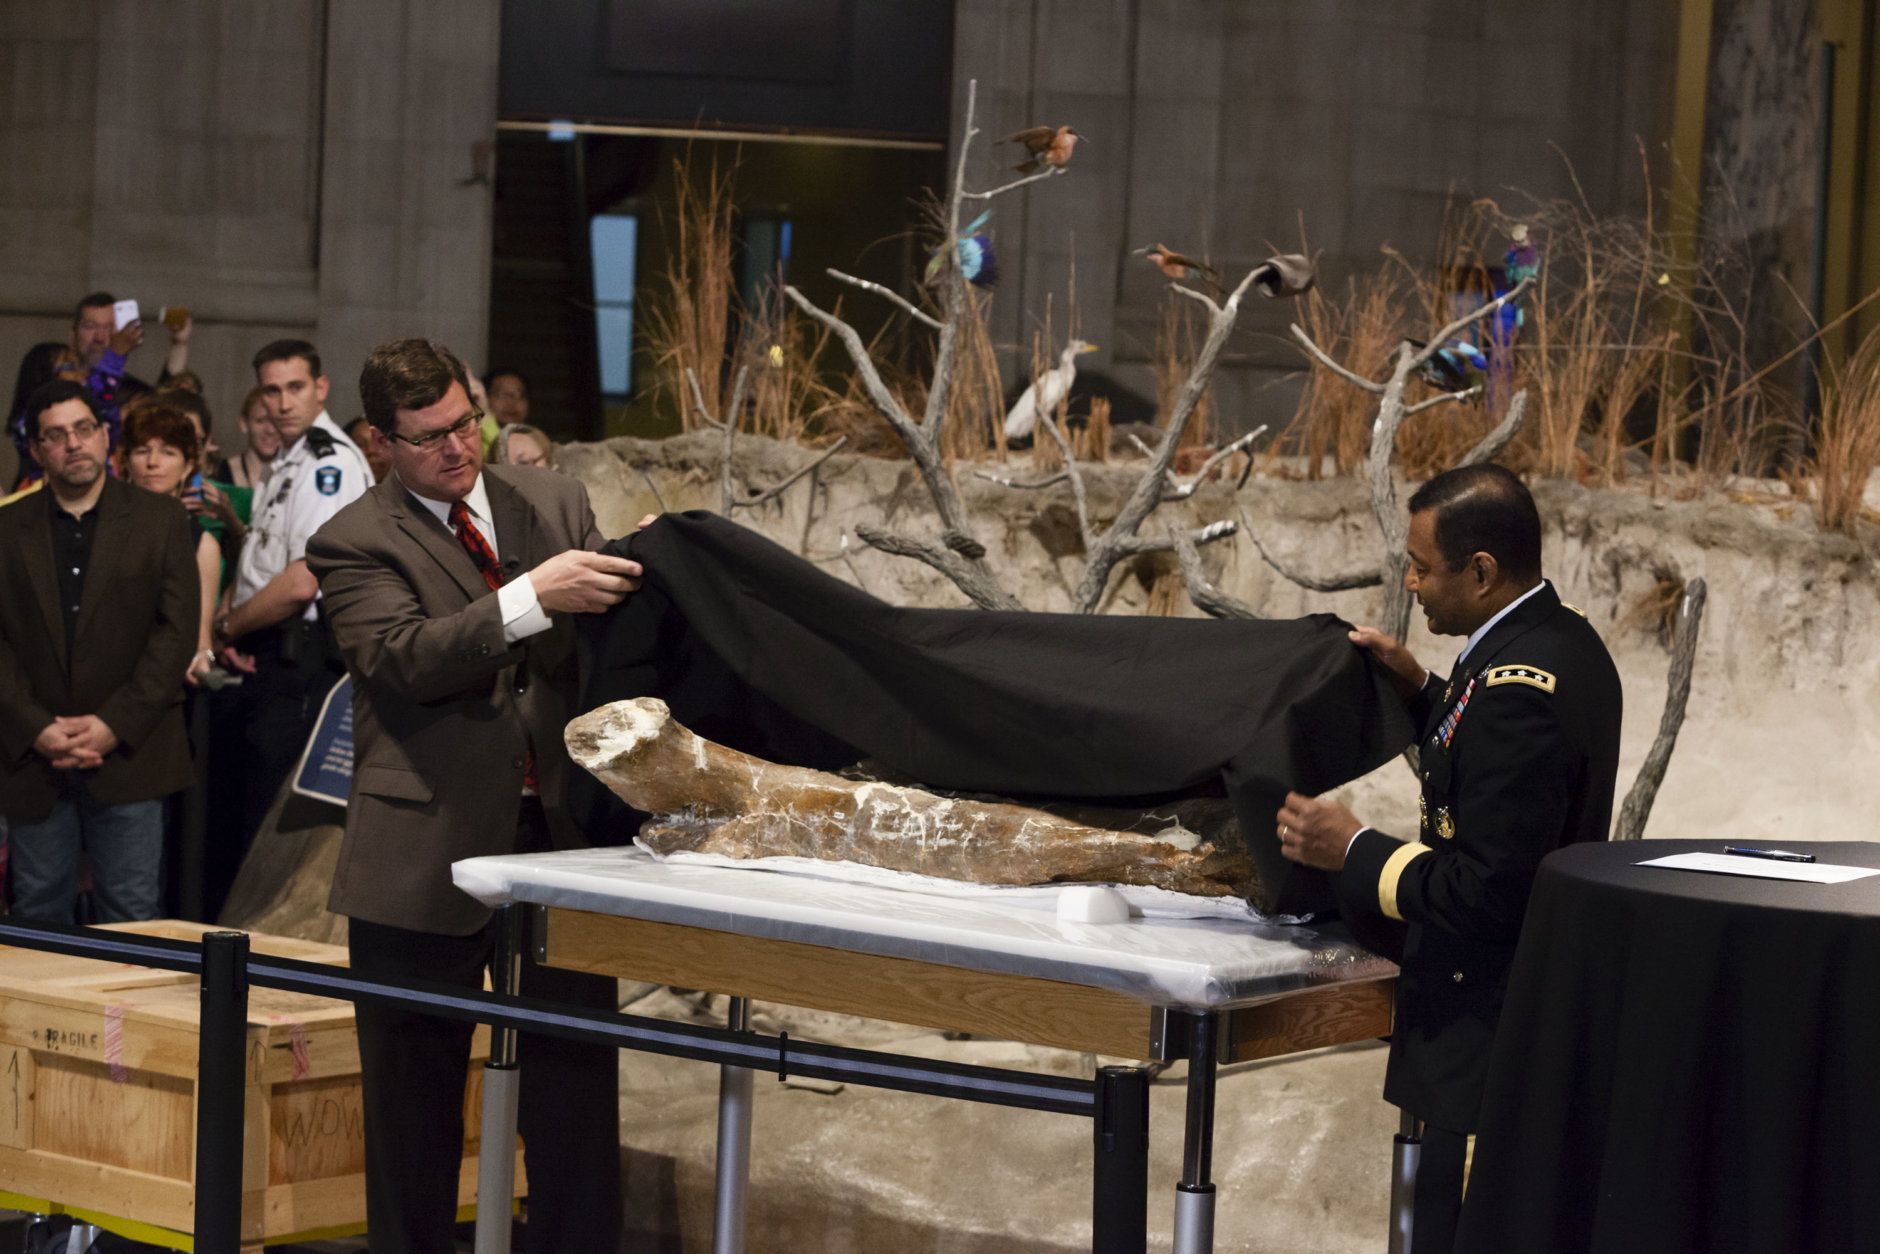 "The National Museum of Natural History welcomed ""the nation's T. rex"" to the Smithsonian Institution on April 15, 2014. It is on loan from the U.S. Army Corps of Engineers. Lt. Gen. Thomas P. Bostick with the Army Corps of Engineers joined the National Museum of Natural History Sant Director Kirk Johnson for the unveiling of the creature's femur bone. (Photo by James Di Loreto/Smithsonian Institution)"